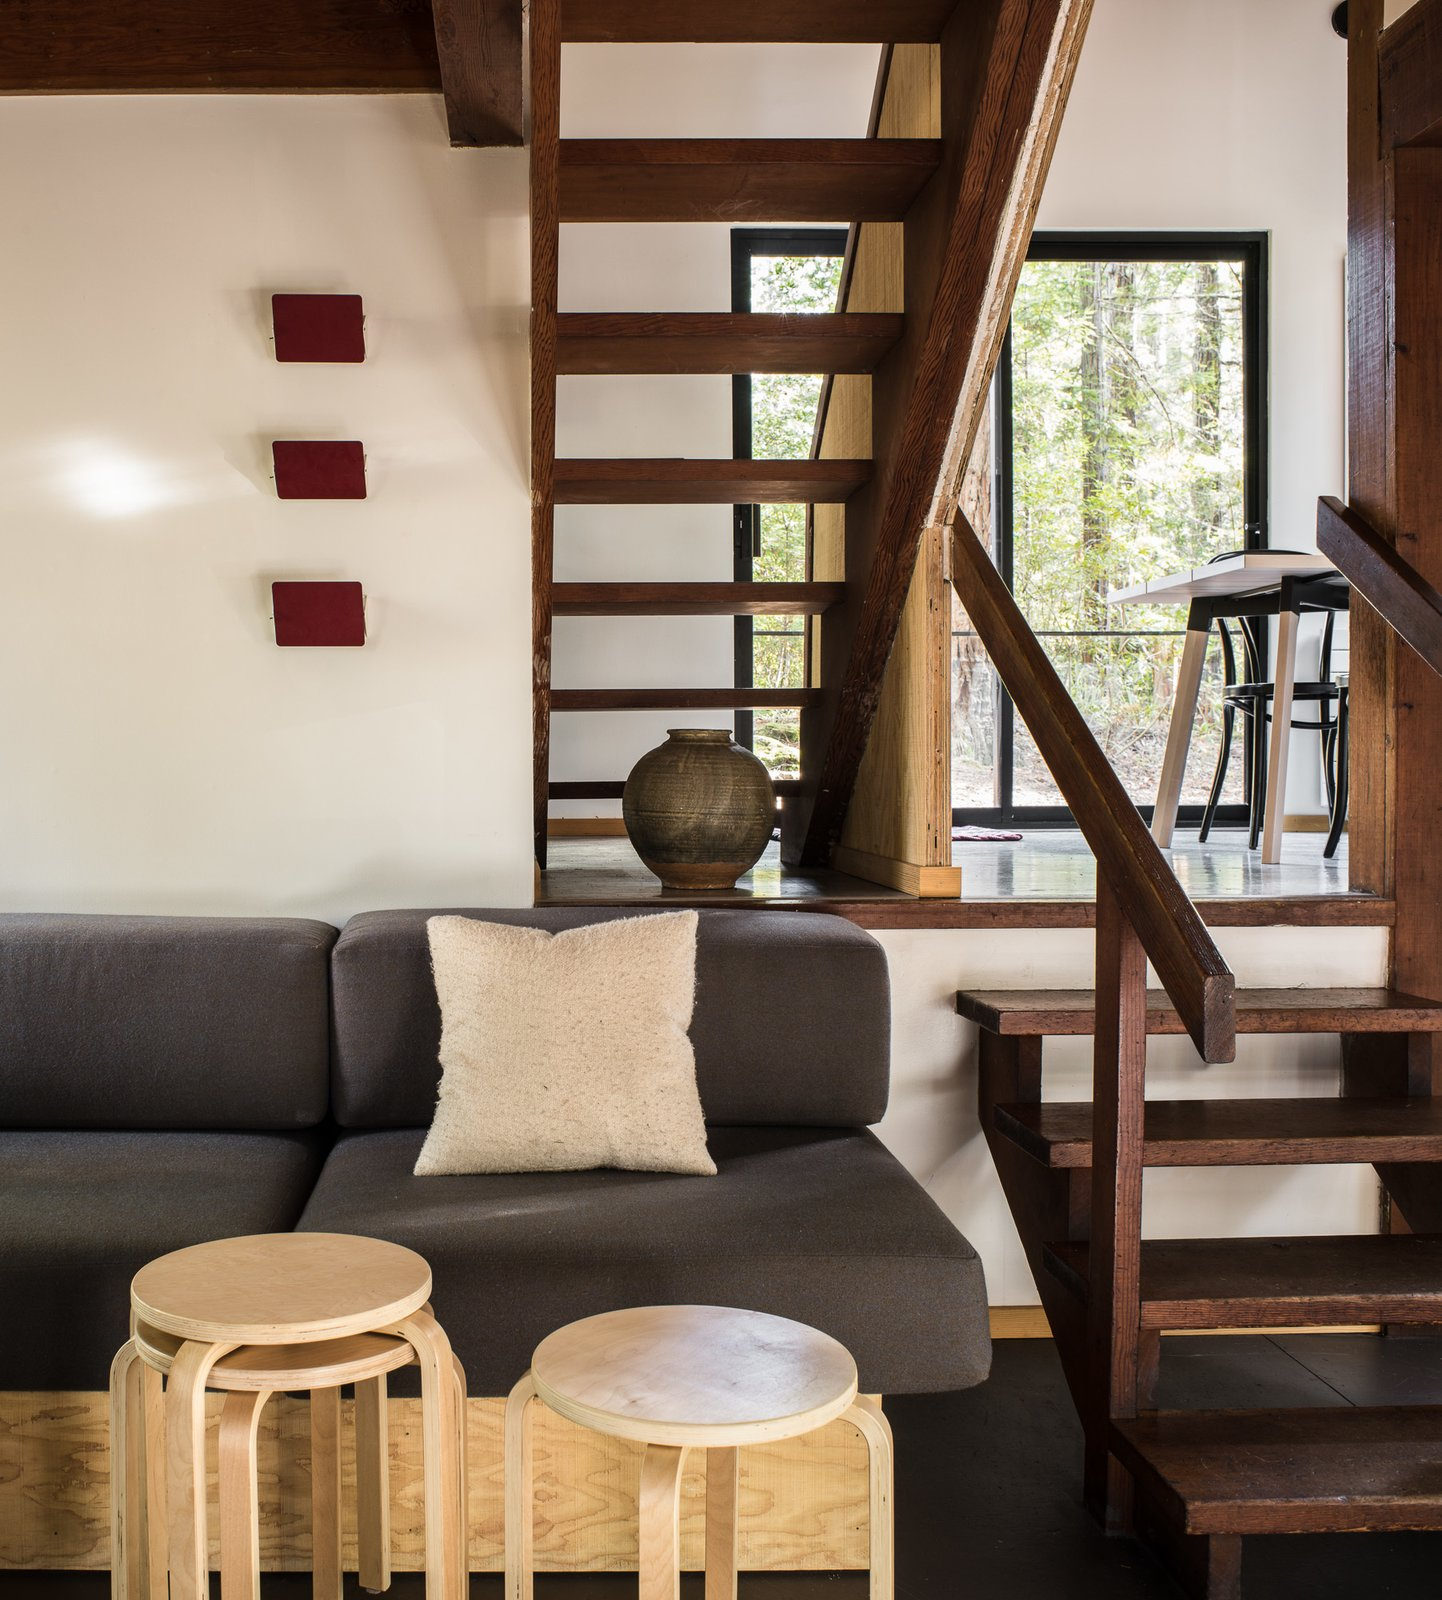 Open wood stairs allow light to pass between levels.